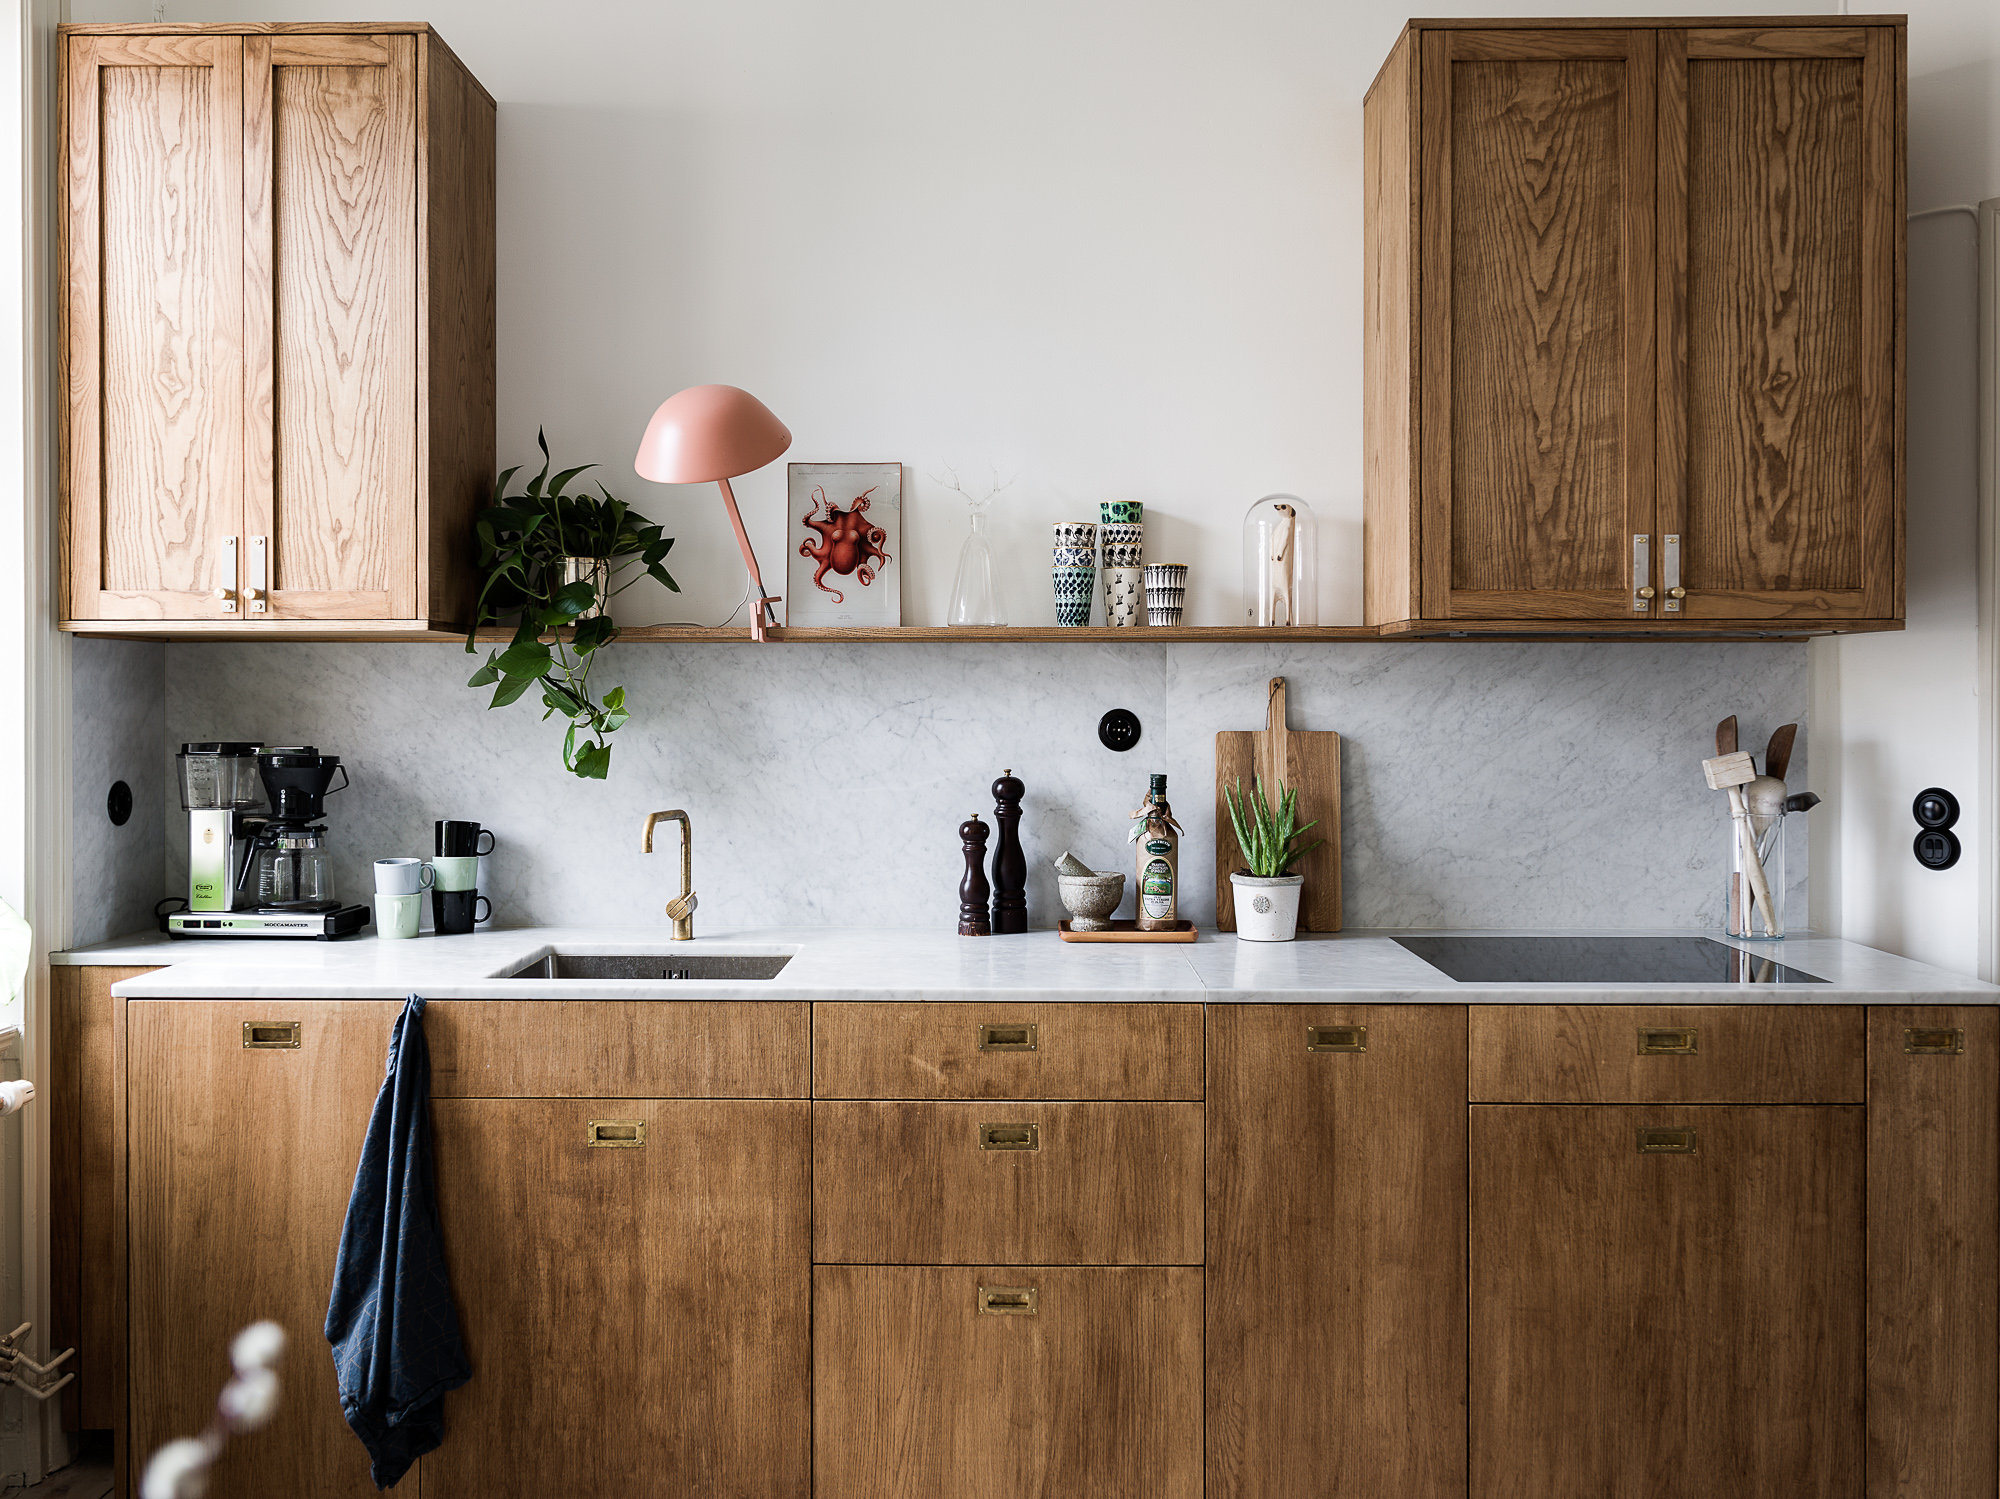 Kitchen in marble and wood   Coco Lapine Design